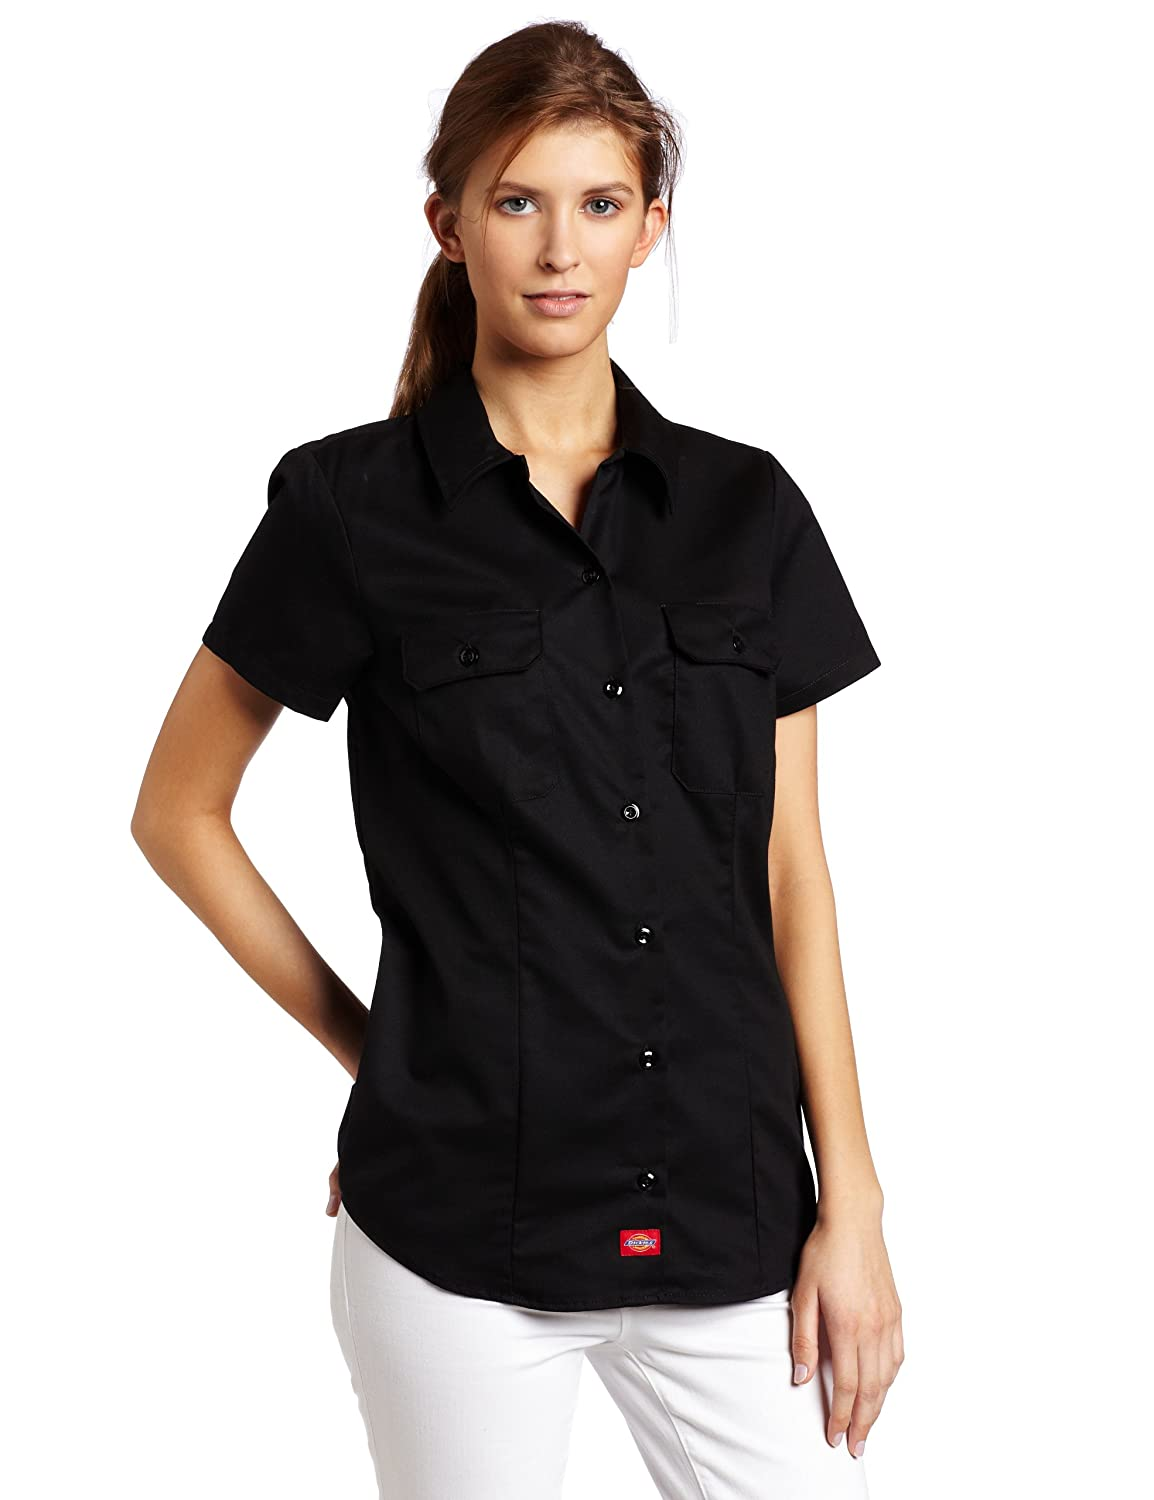 Amazon.com: Dickies Women's Short-Sleeve Work Shirt: Clothing